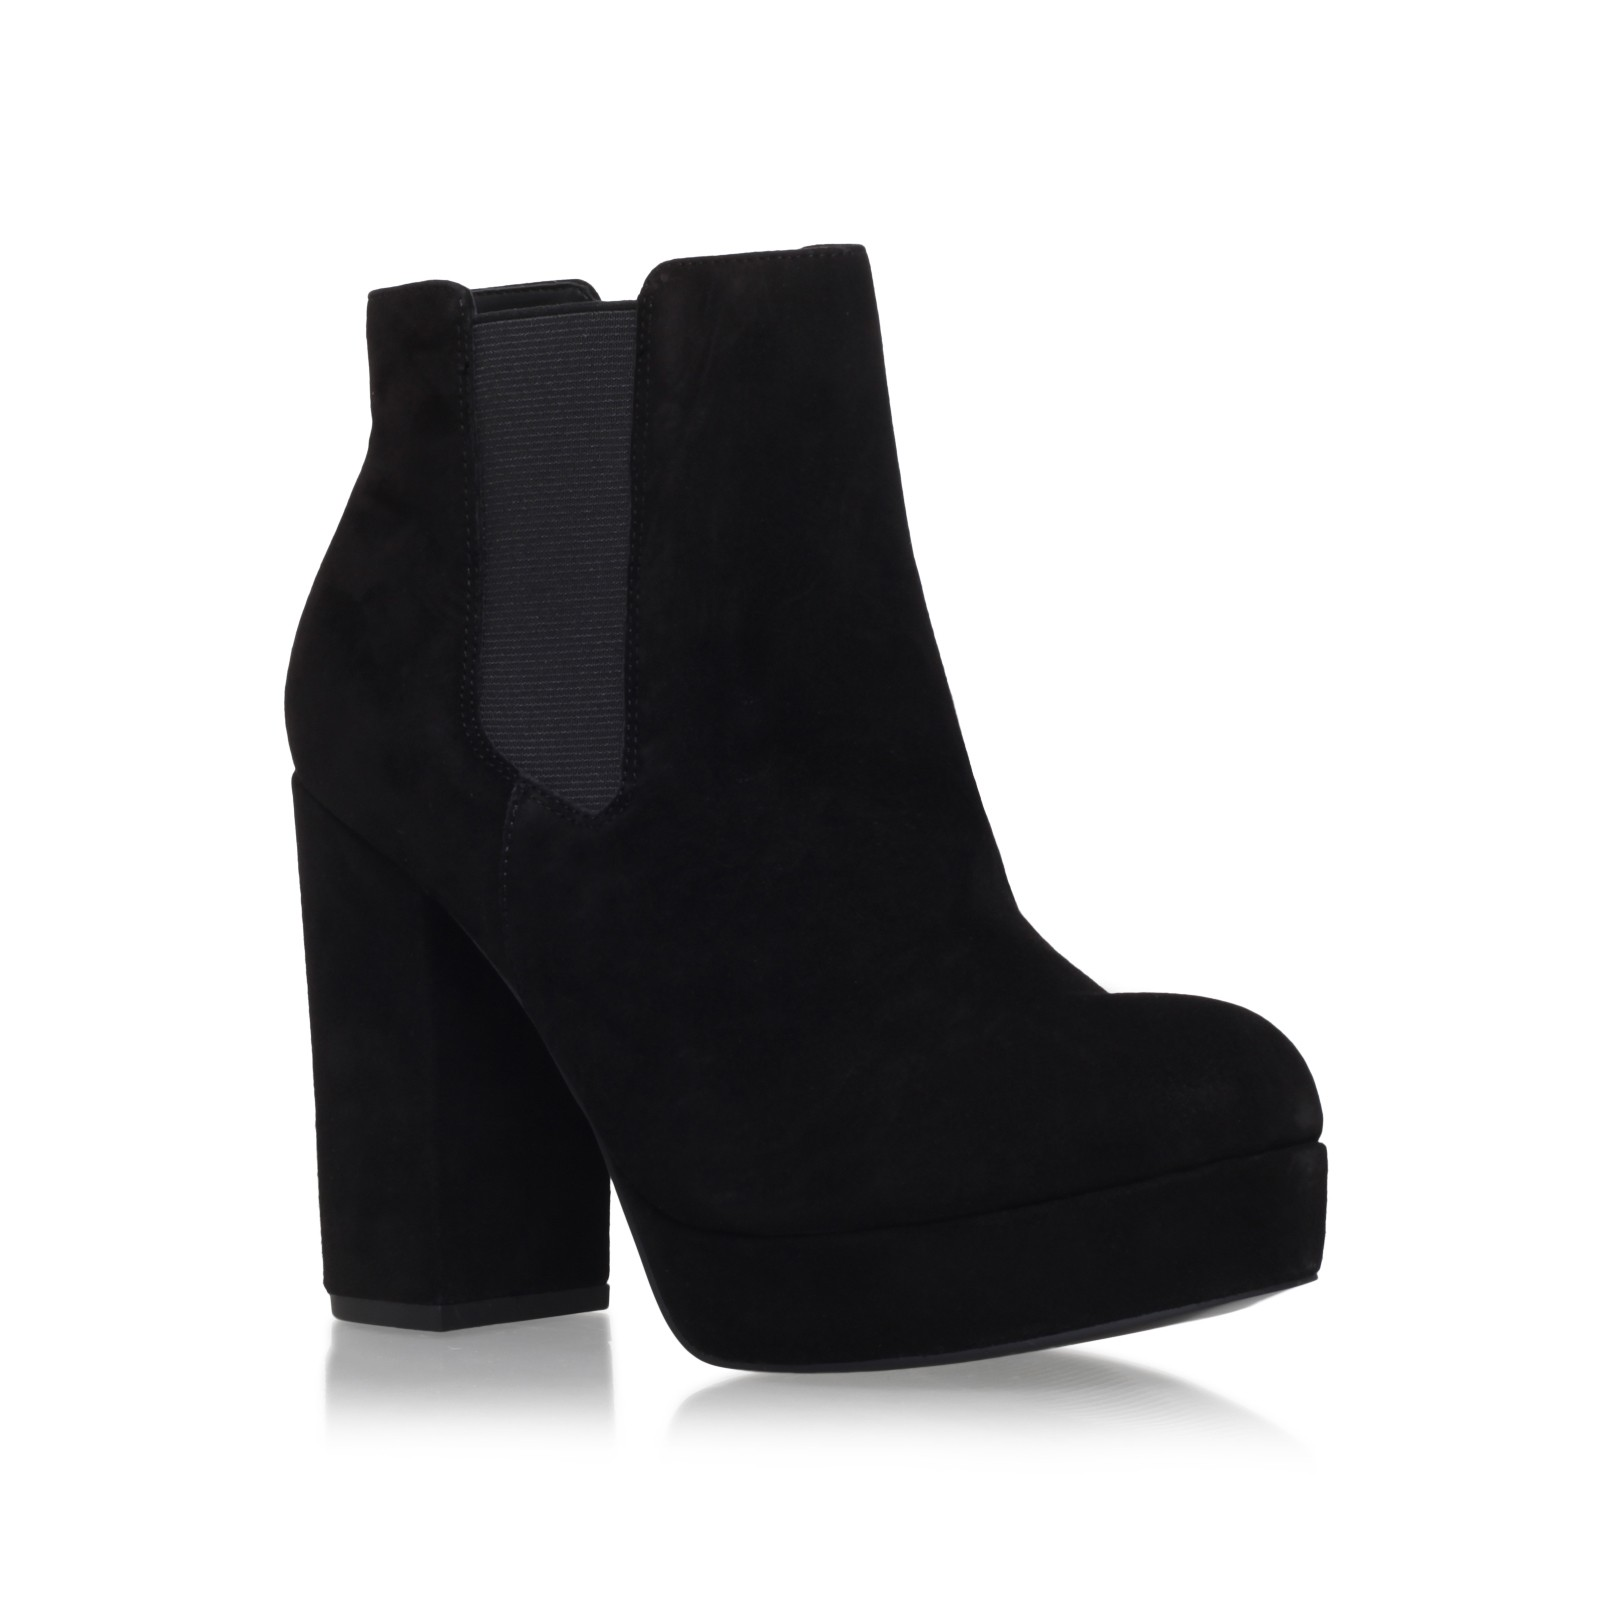 Ankle High If you love wearing boots but want something that's super-sexy for a specific outfit, consider wearing a pair of ankle boots from Sinful Shoes. These styles are designed to take your look to the next level with fun embellishments, sultry styles and sky-high heels.